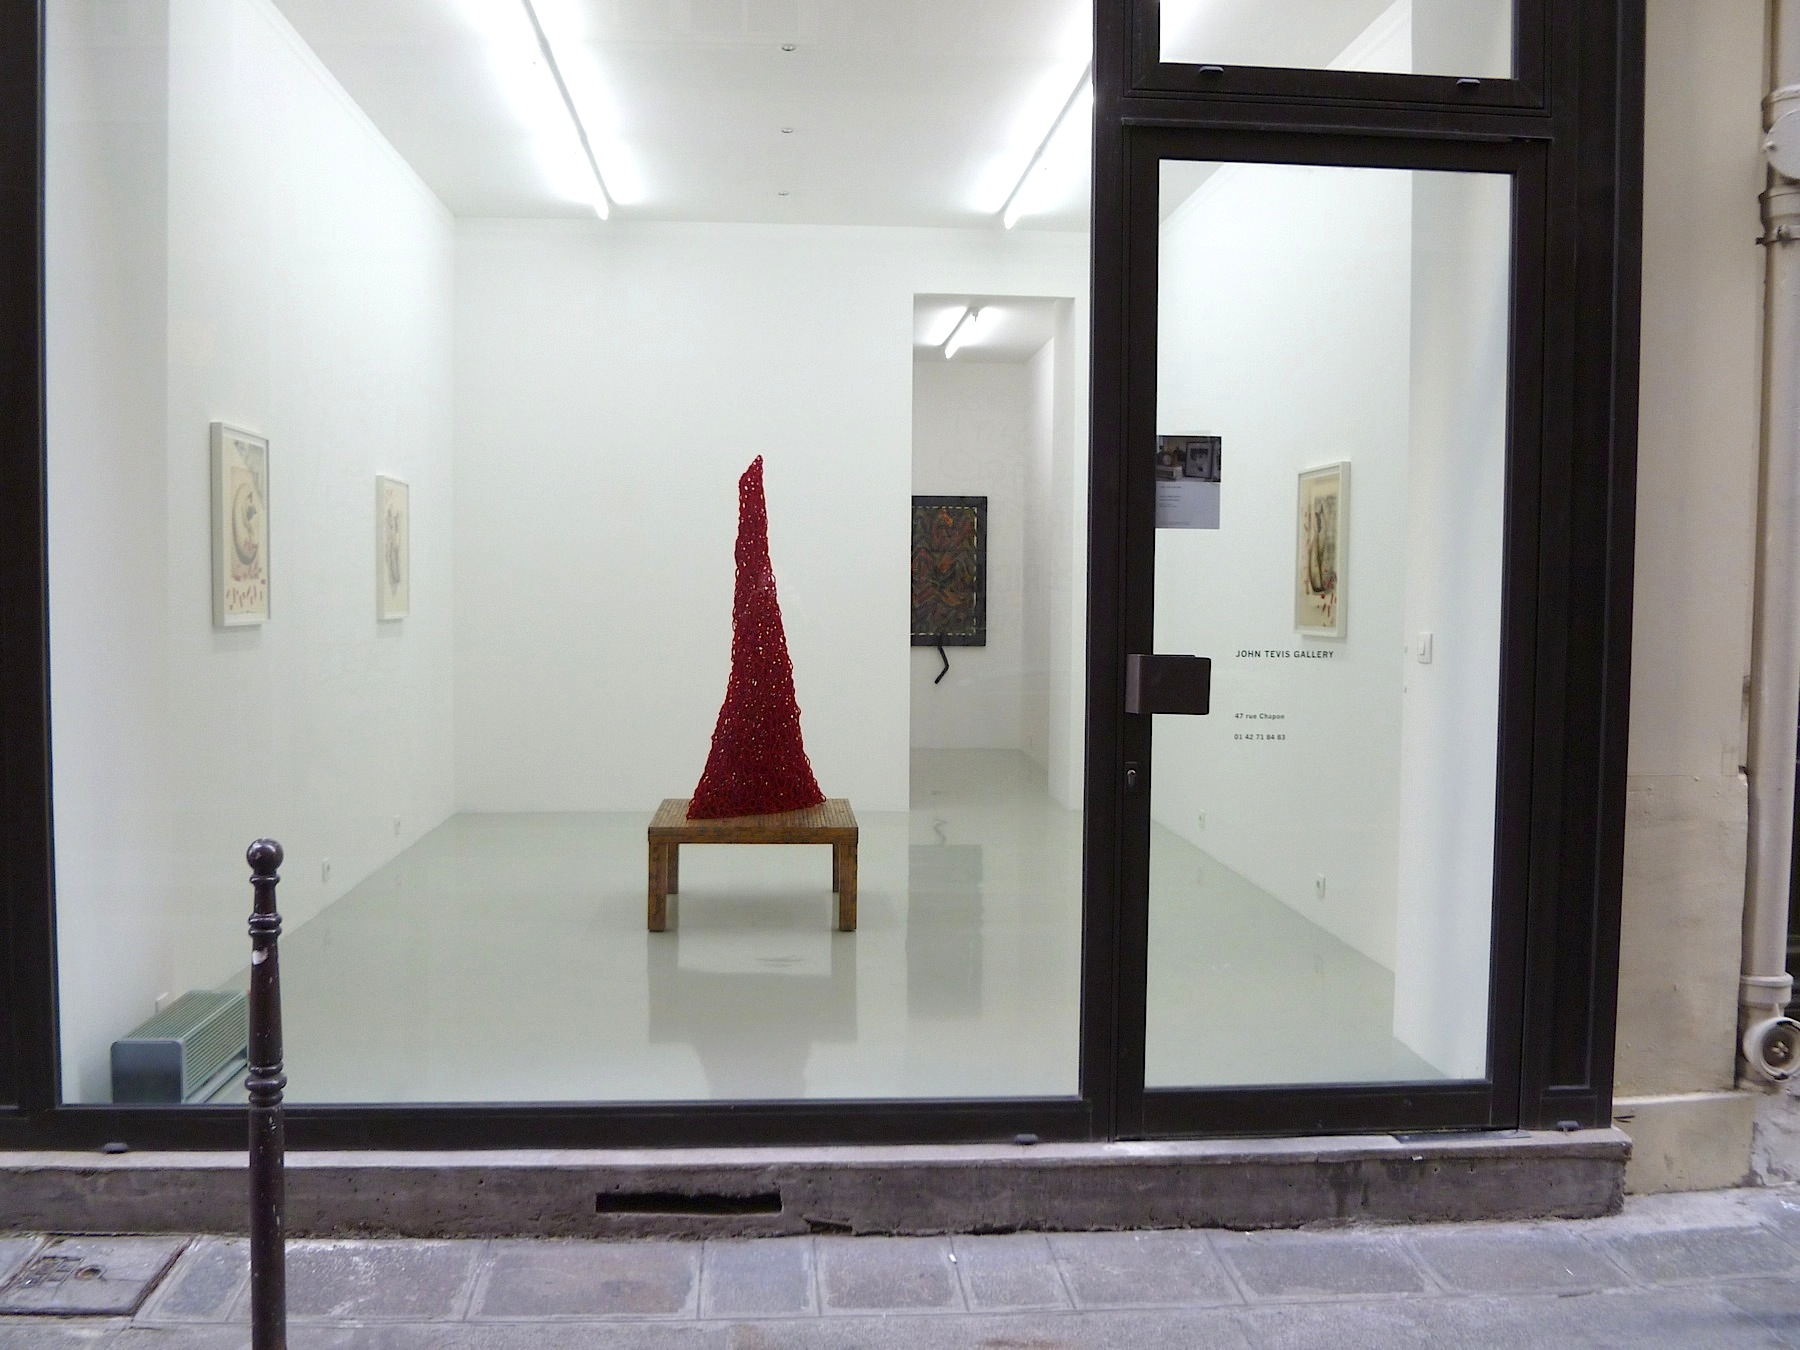 A Conversation with the Gods/John Tevis Gallery/Paris